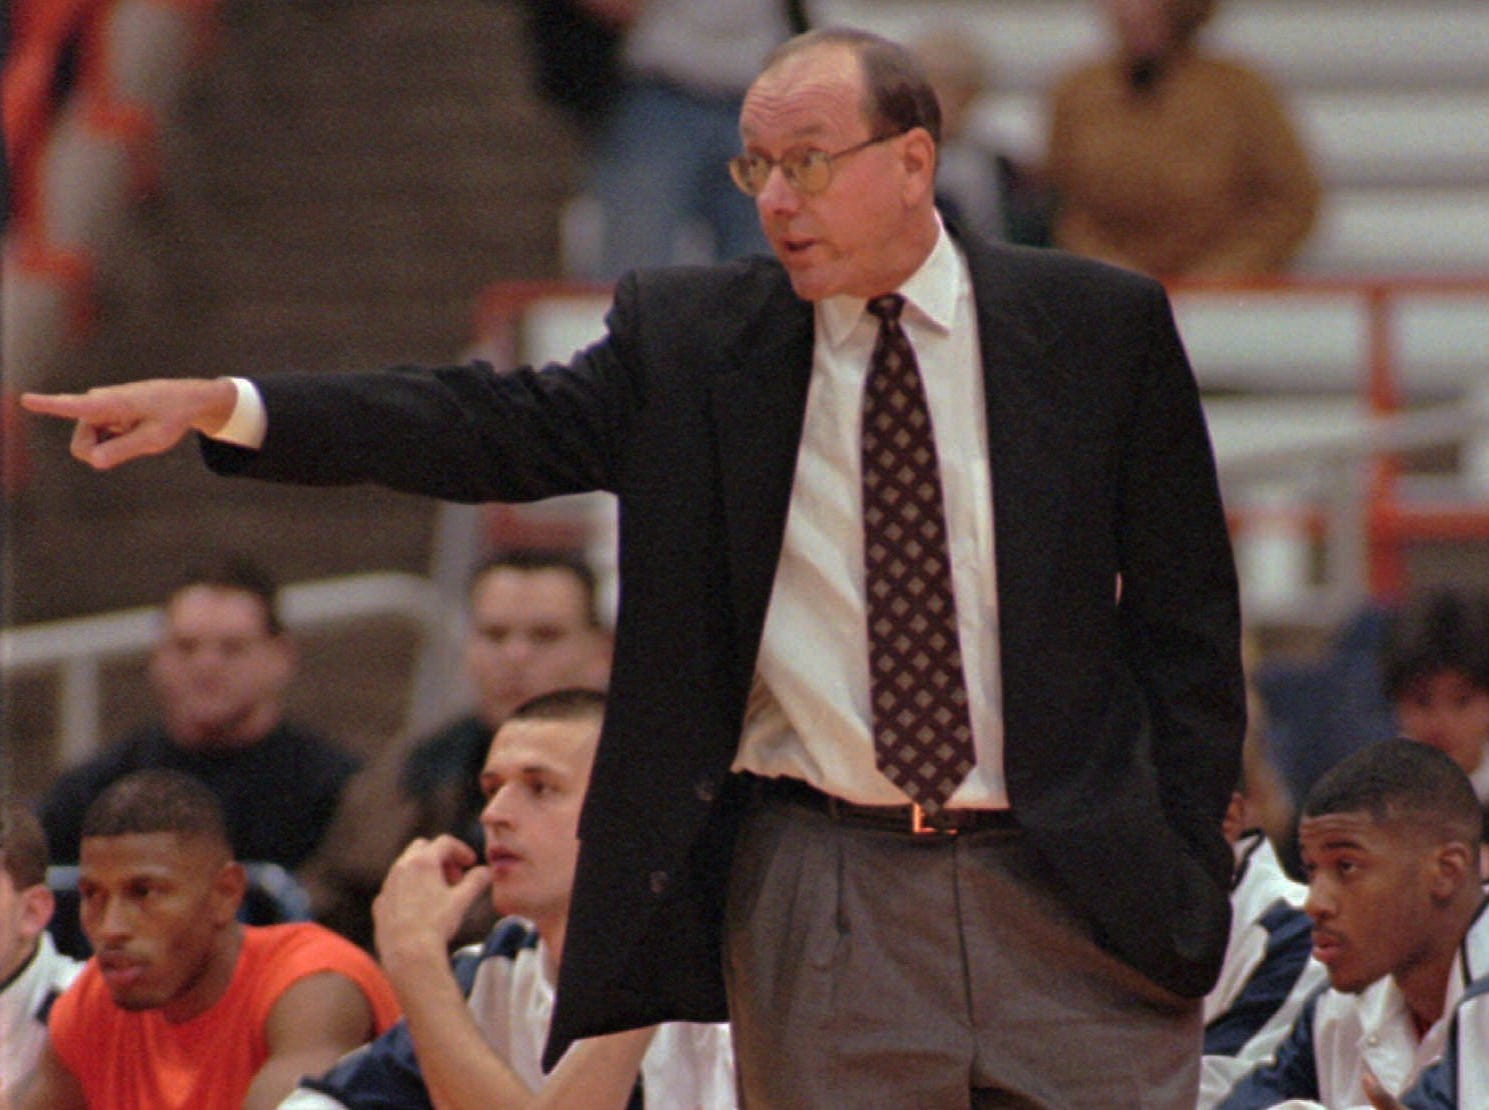 1997: Syracuse head basketball coach Jim Boeheim directs his team against the the Upstate New York Amateur Athletic Union team, as the Orangemen took to the Carrier Dome court for it's first exhibition game Tuesday night, Nov. 4, 1997, in Syracuse, N.Y. Boeheim begins his 22nd season as coach. (AP Photo/Michael Okoniewski)